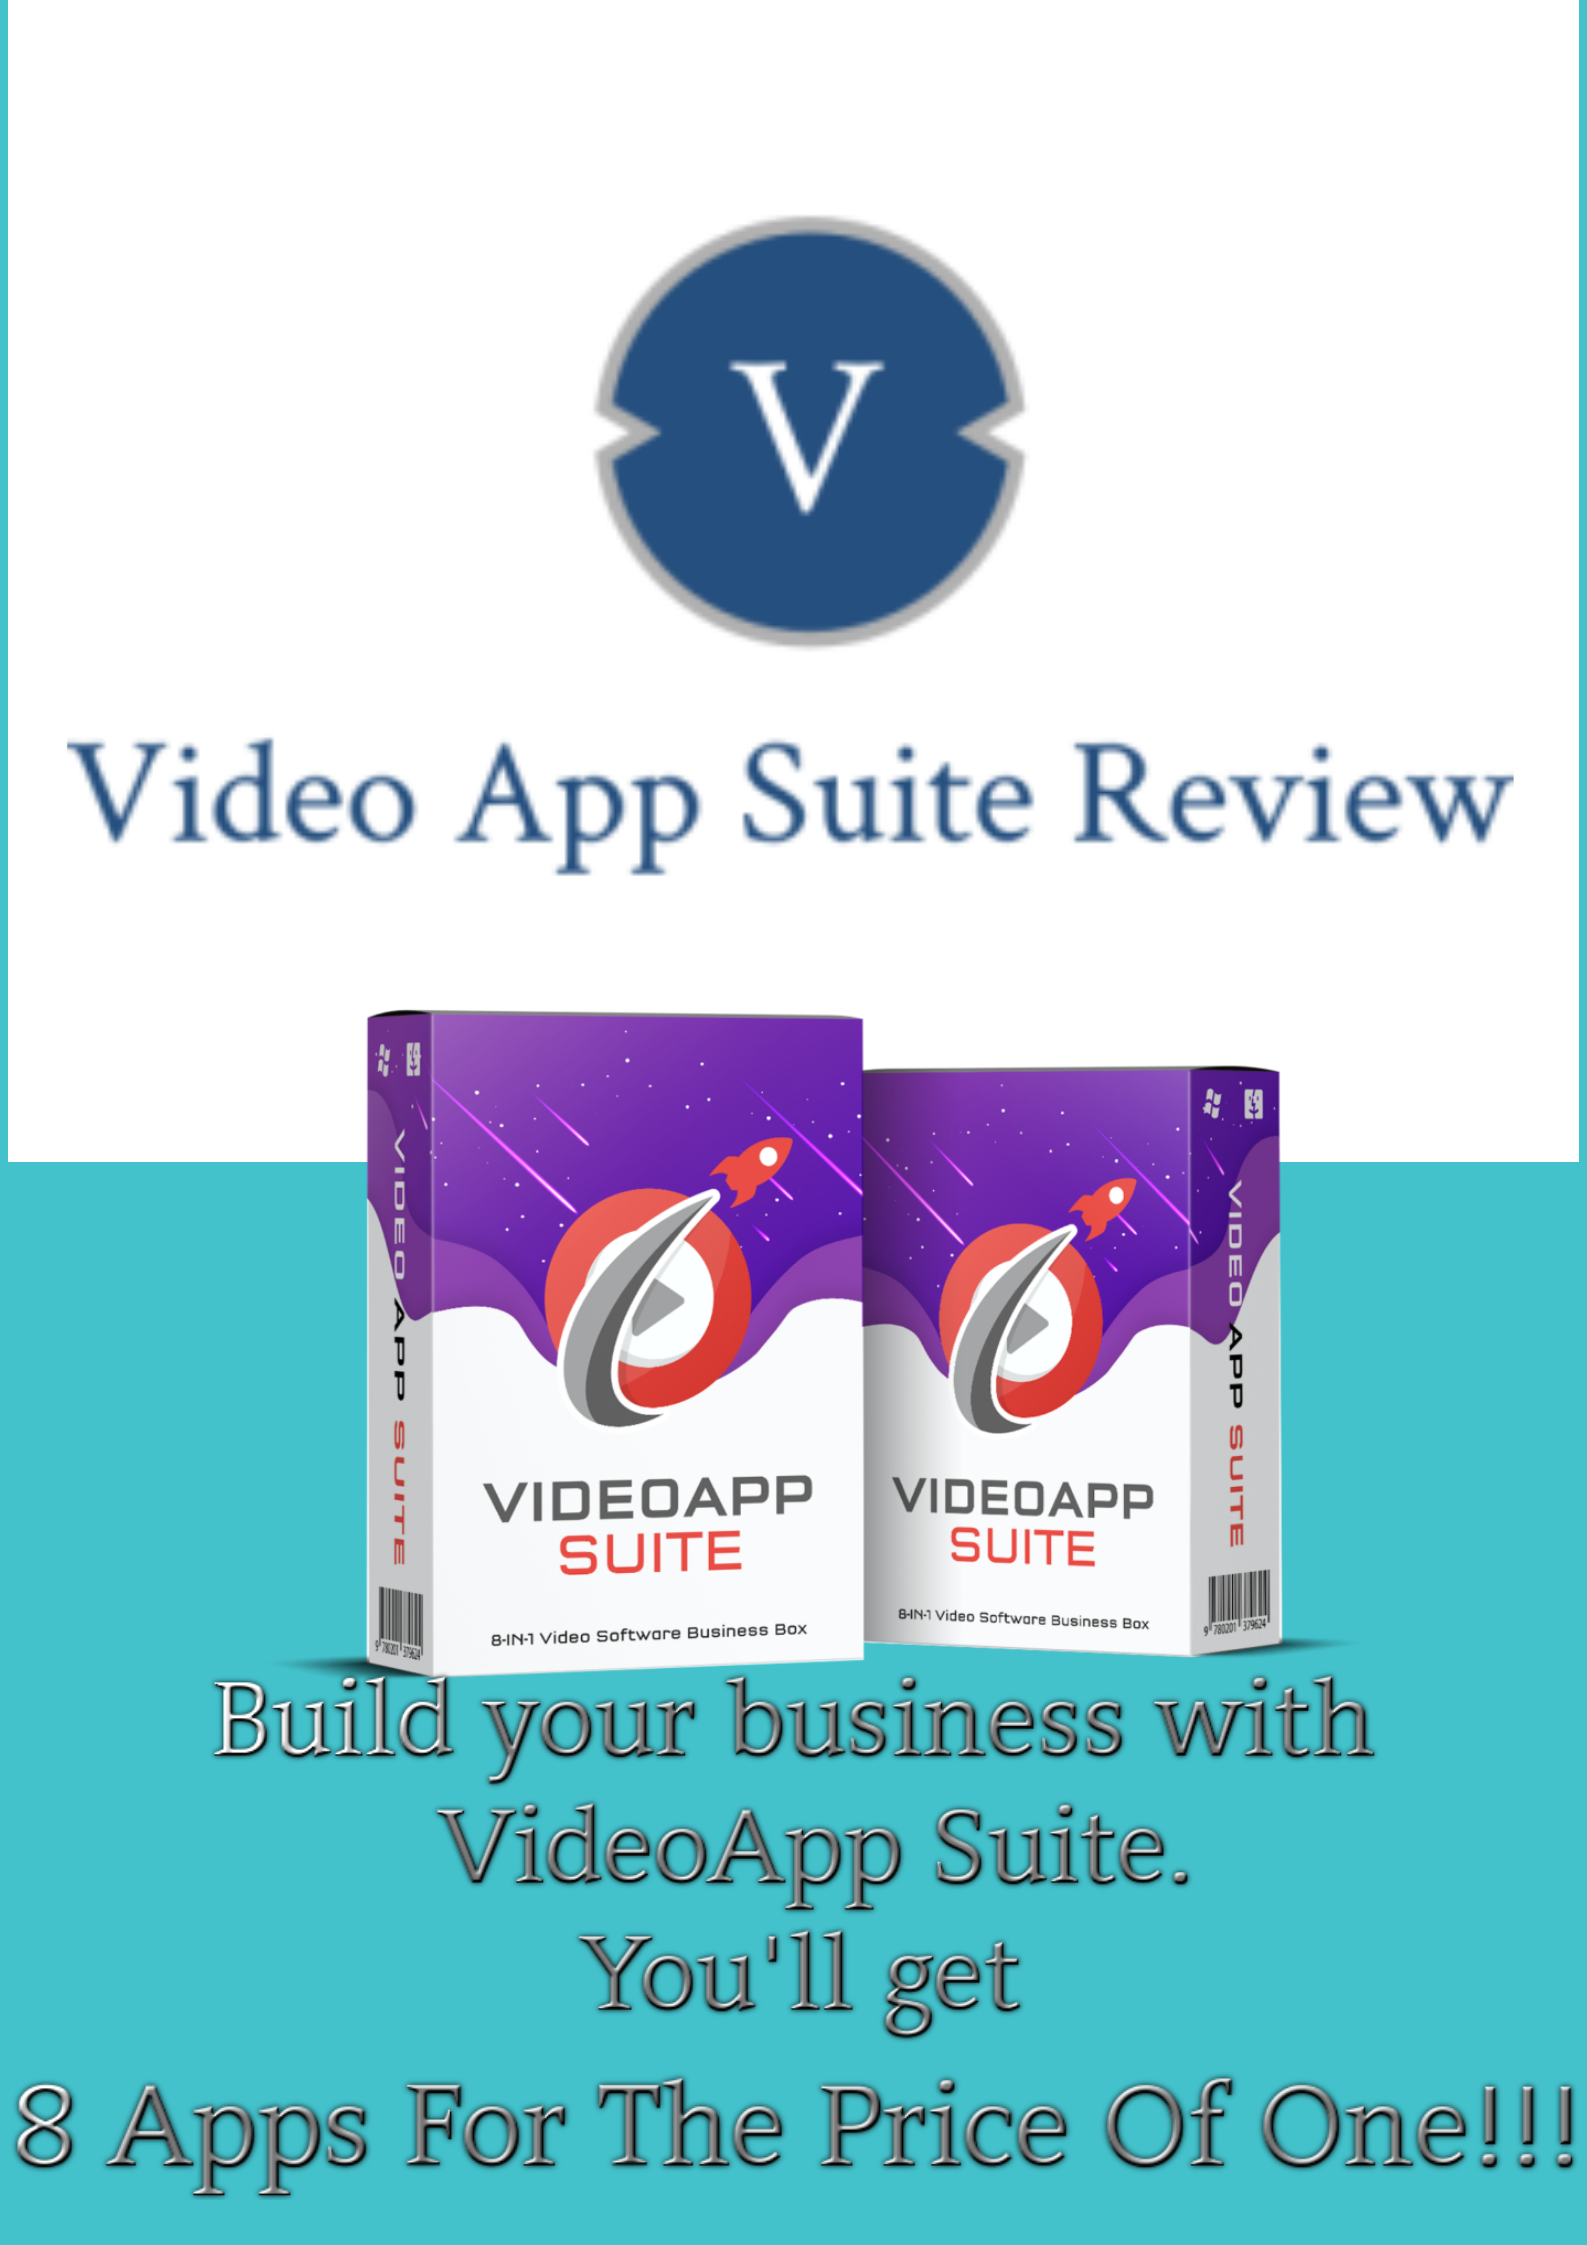 VideoApp Suite is a new video editing software, that'll